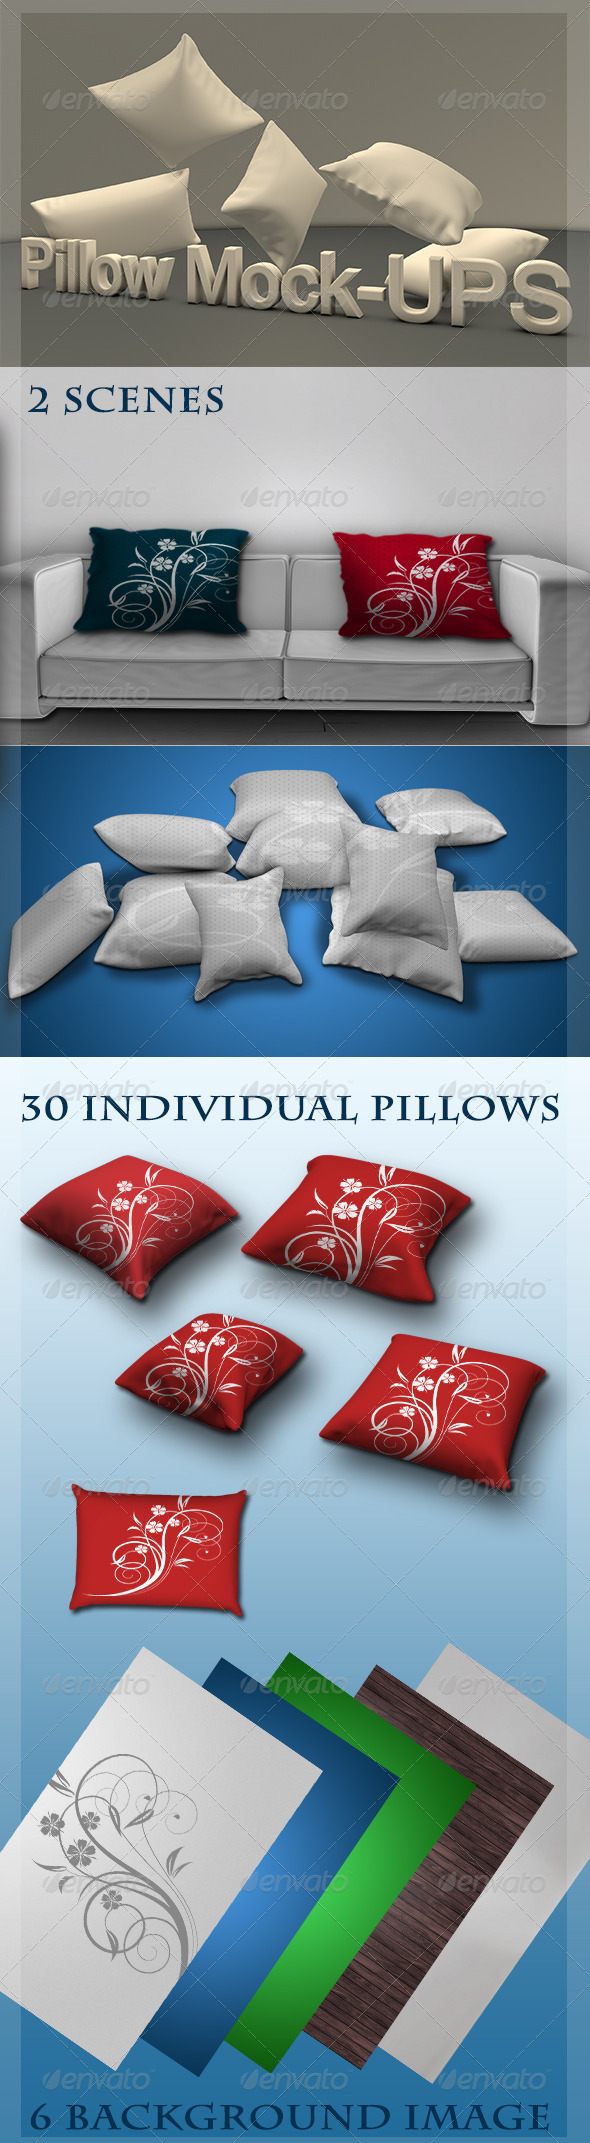 GraphicRiver Pillow Mock-ups 4859963